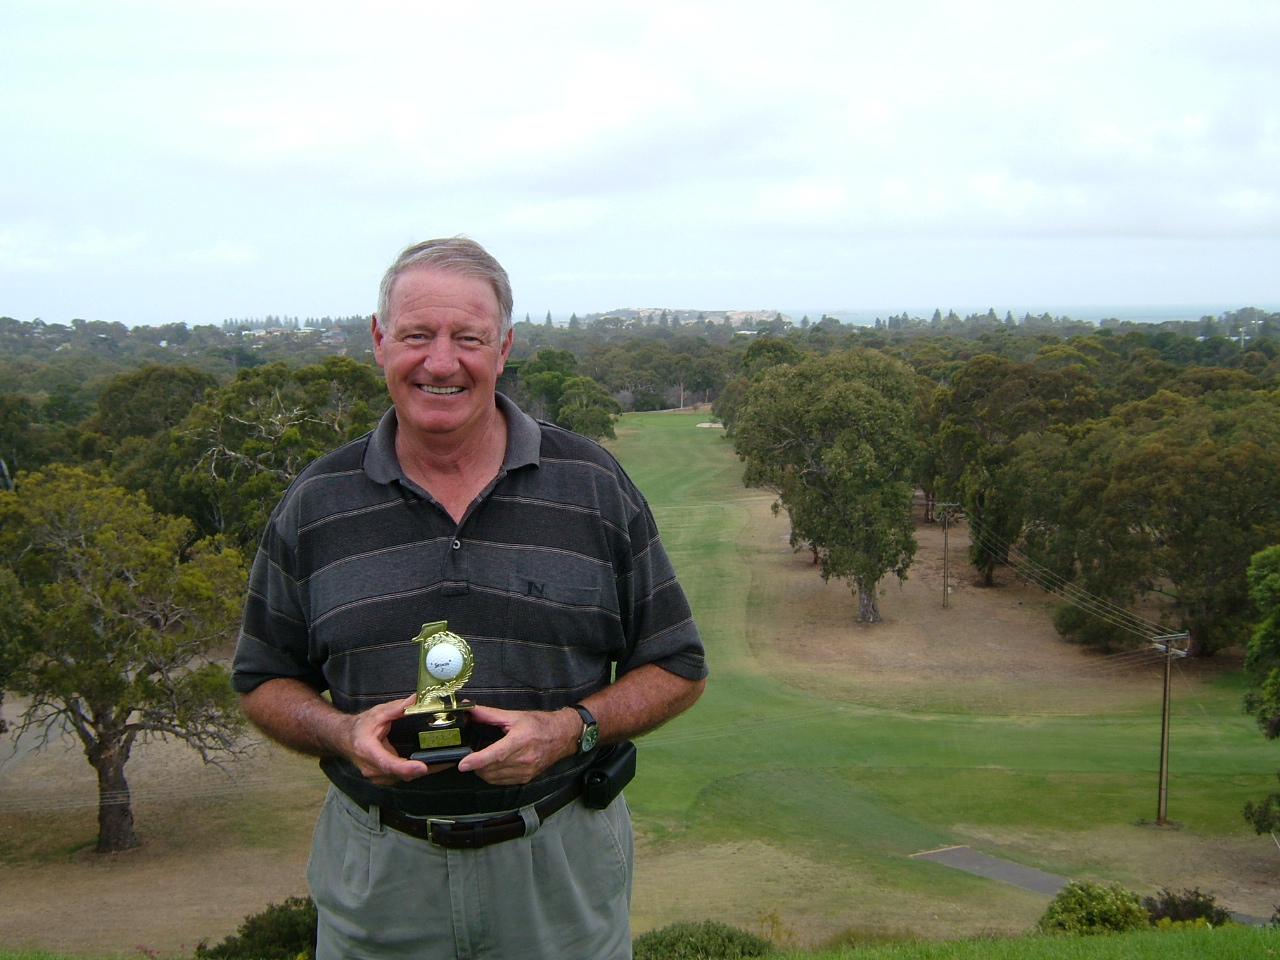 Rob Gasmier. Hole in One on the 7th Hole 27.11.2014